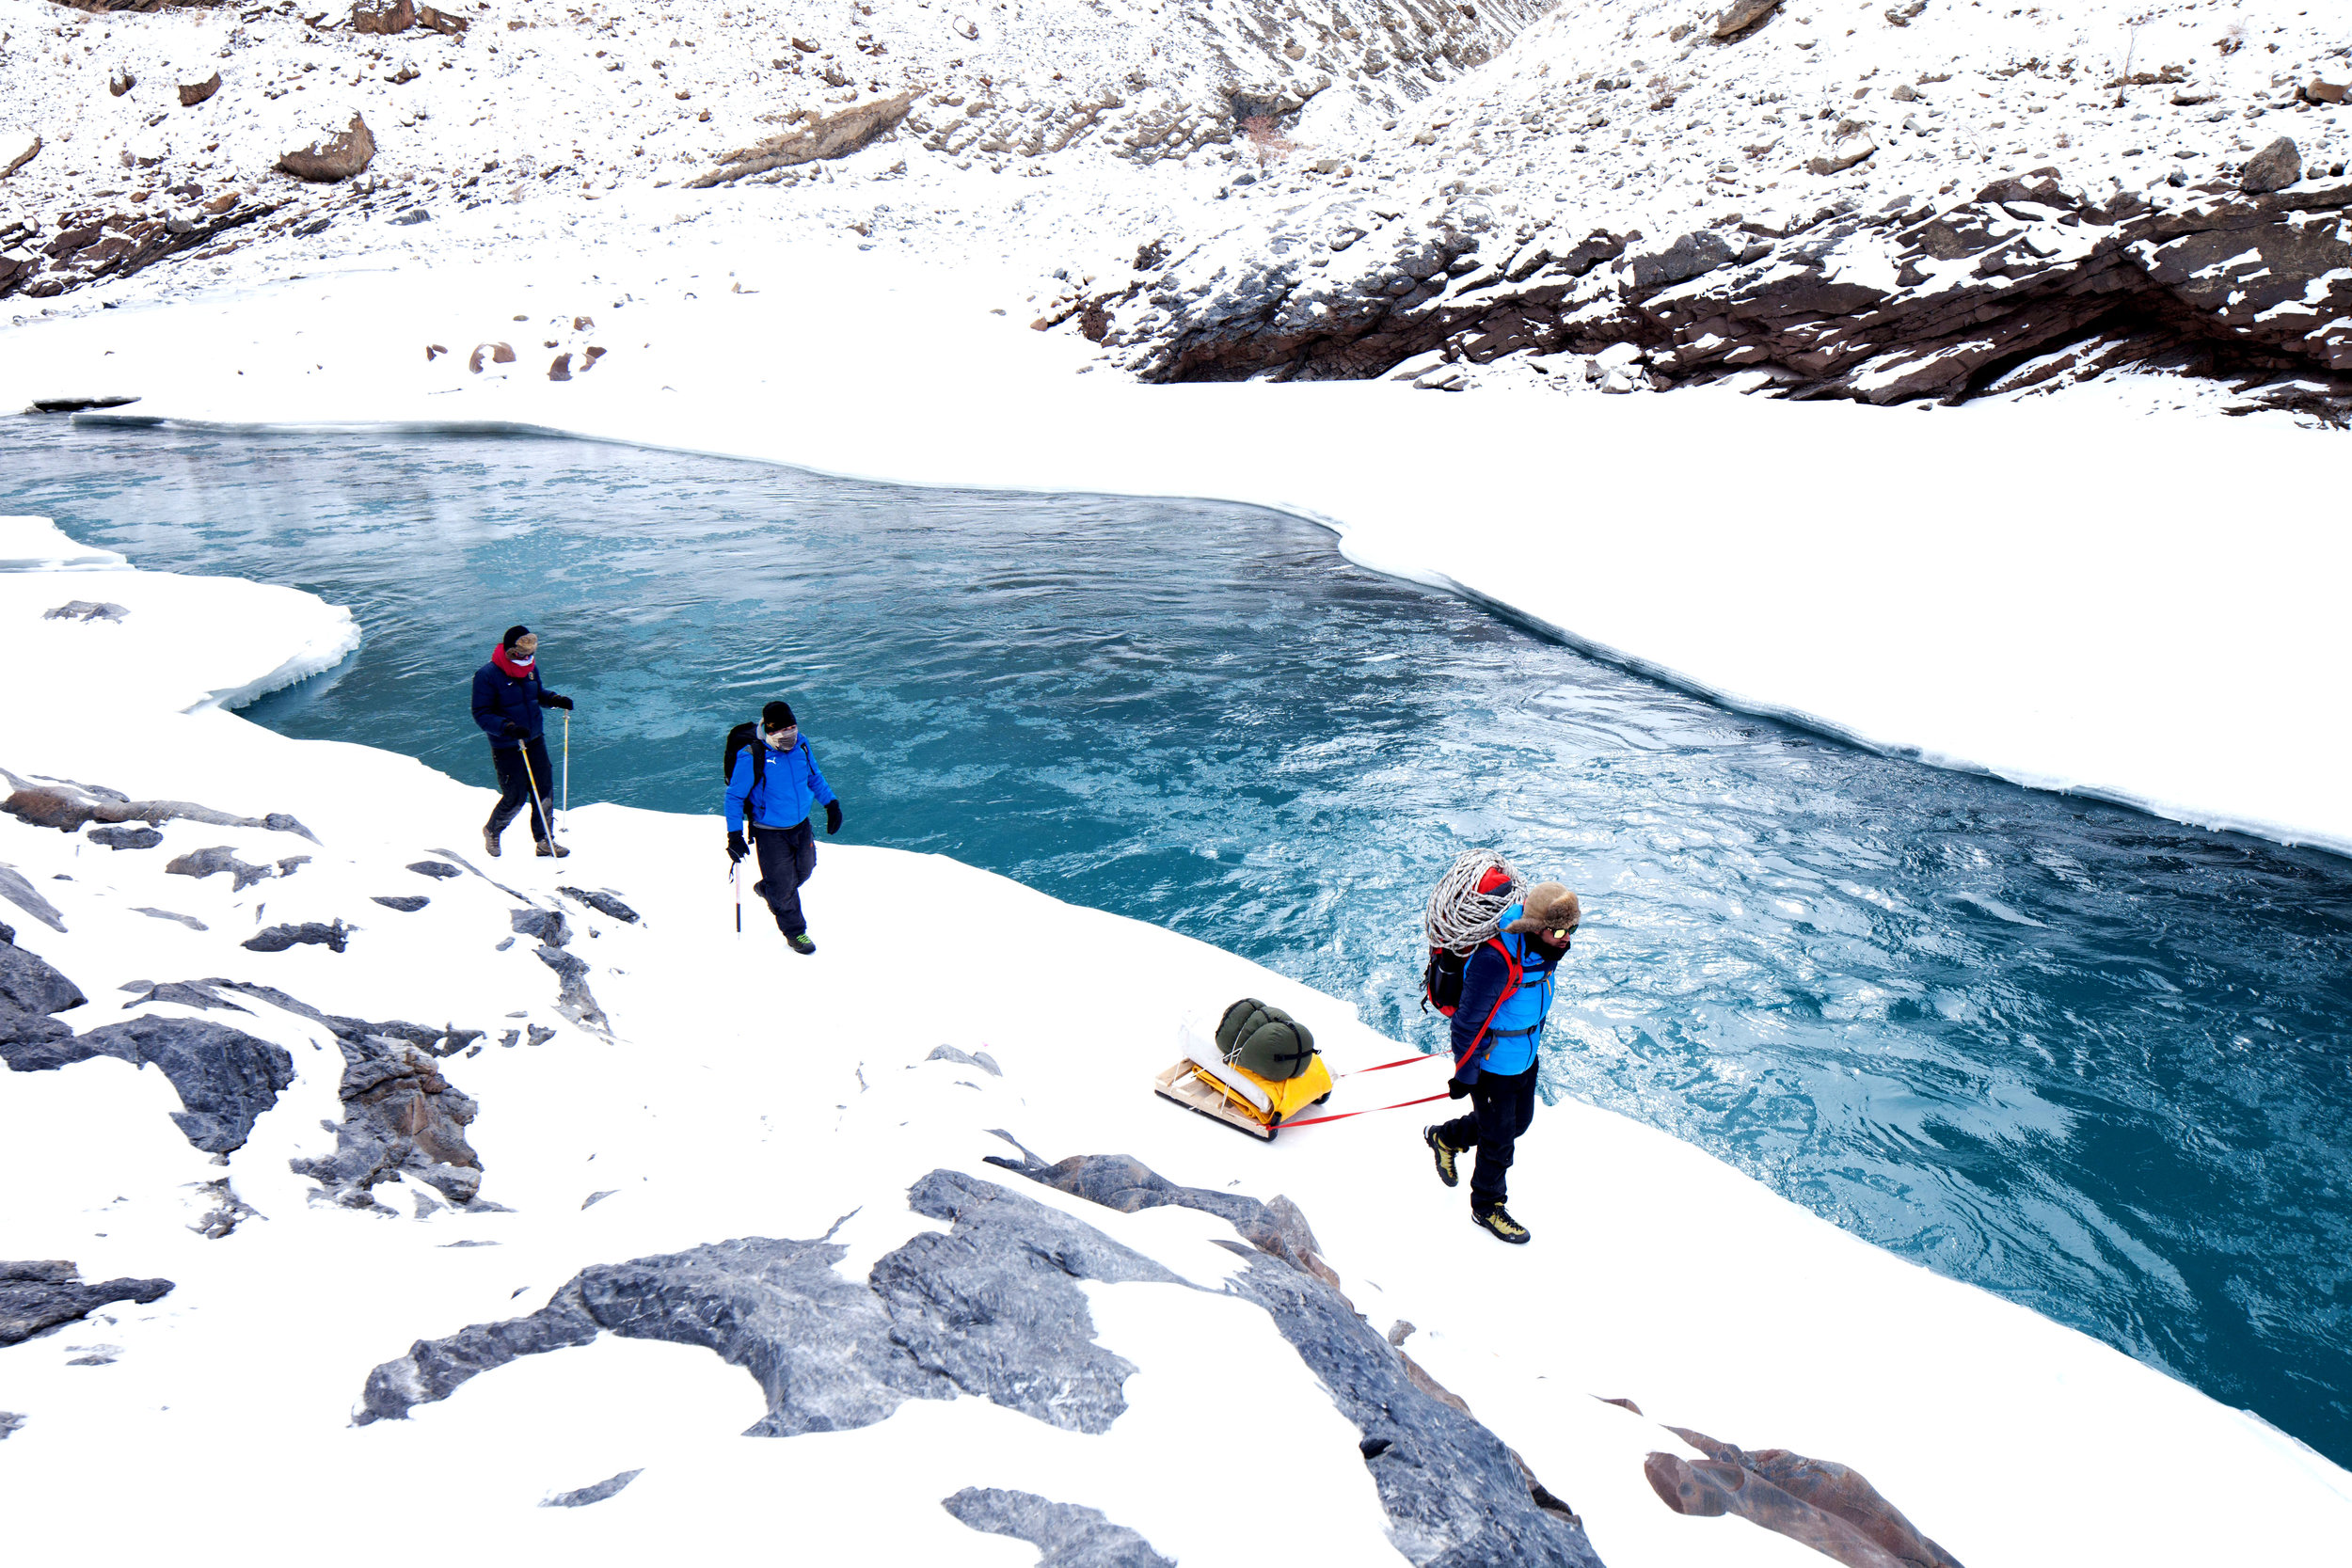 kashmir & ladakh - Traverse the Himalayas by raft and on-foot as the locals do during the changing seasons, and unveil some of the world's most breathtaking scenery.